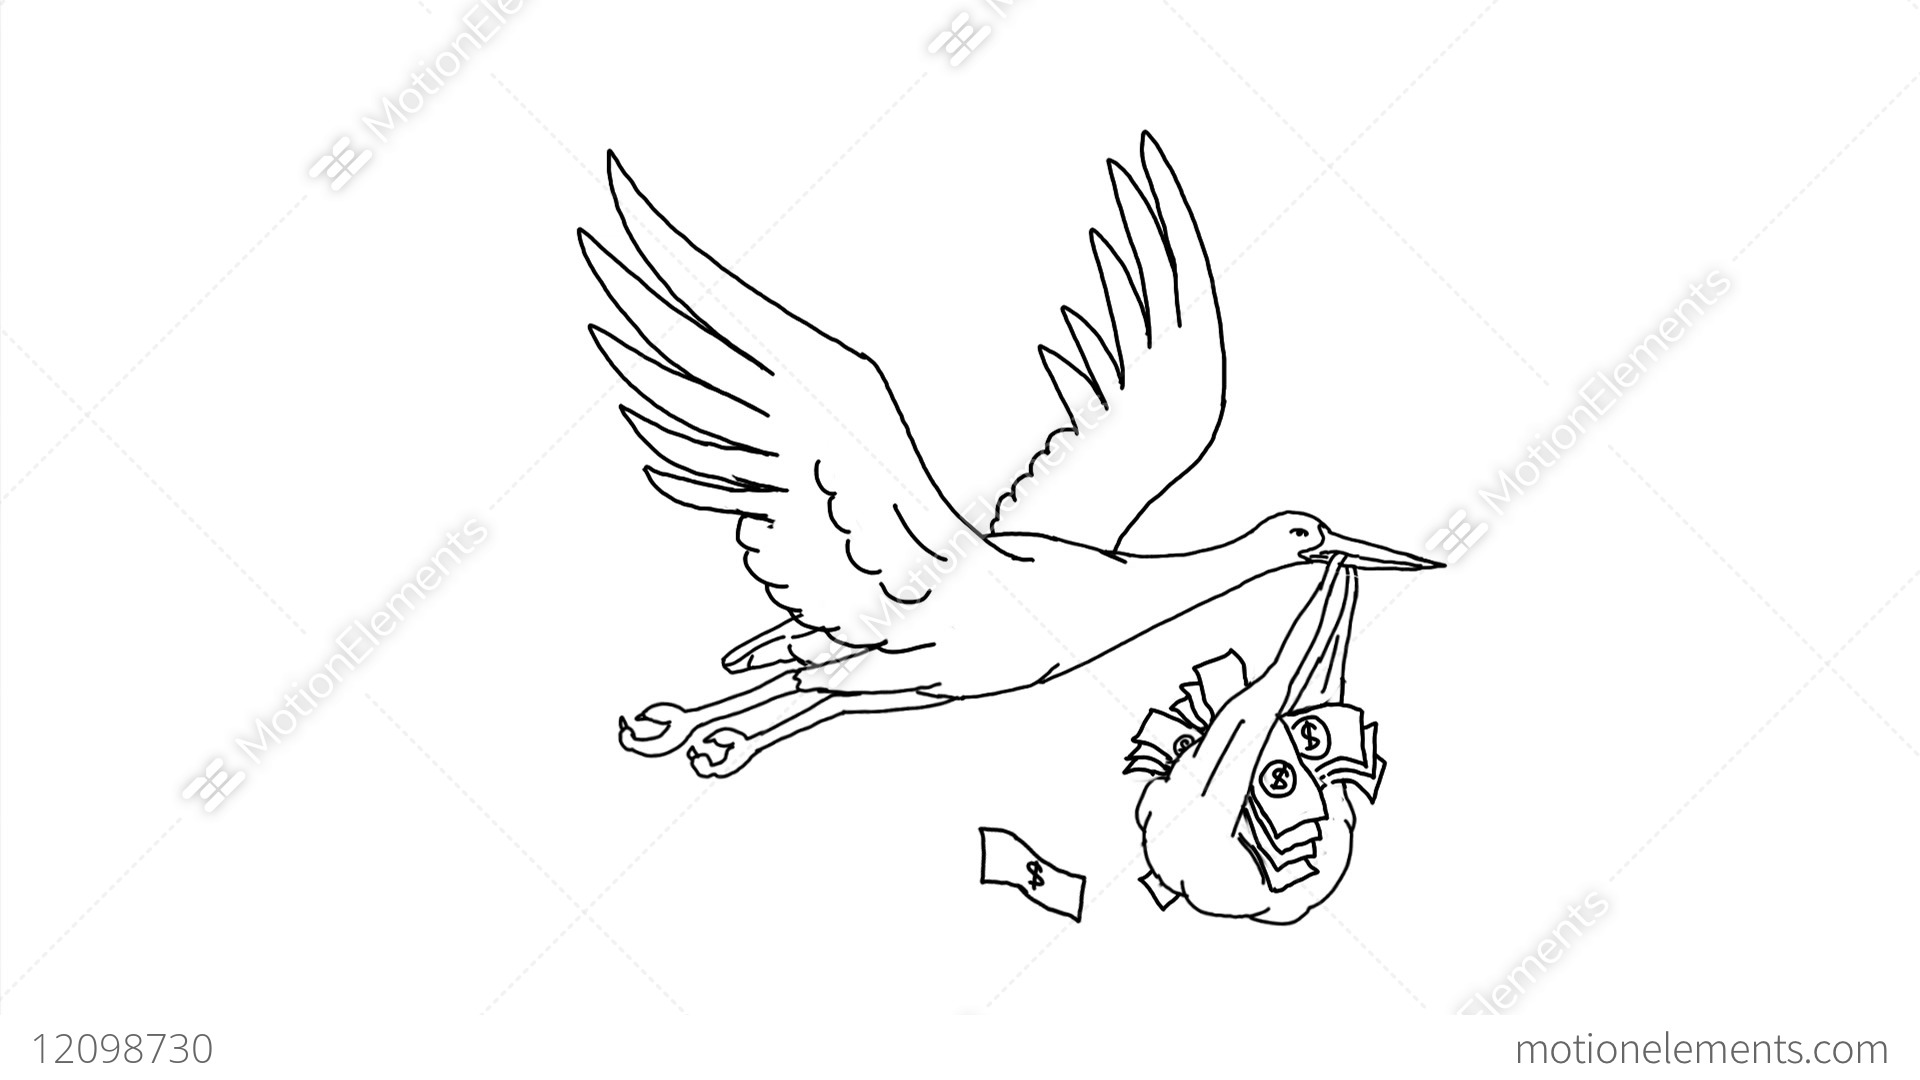 Stork Carrying Money Bag Drawing 2d Animation Stock Video Footage